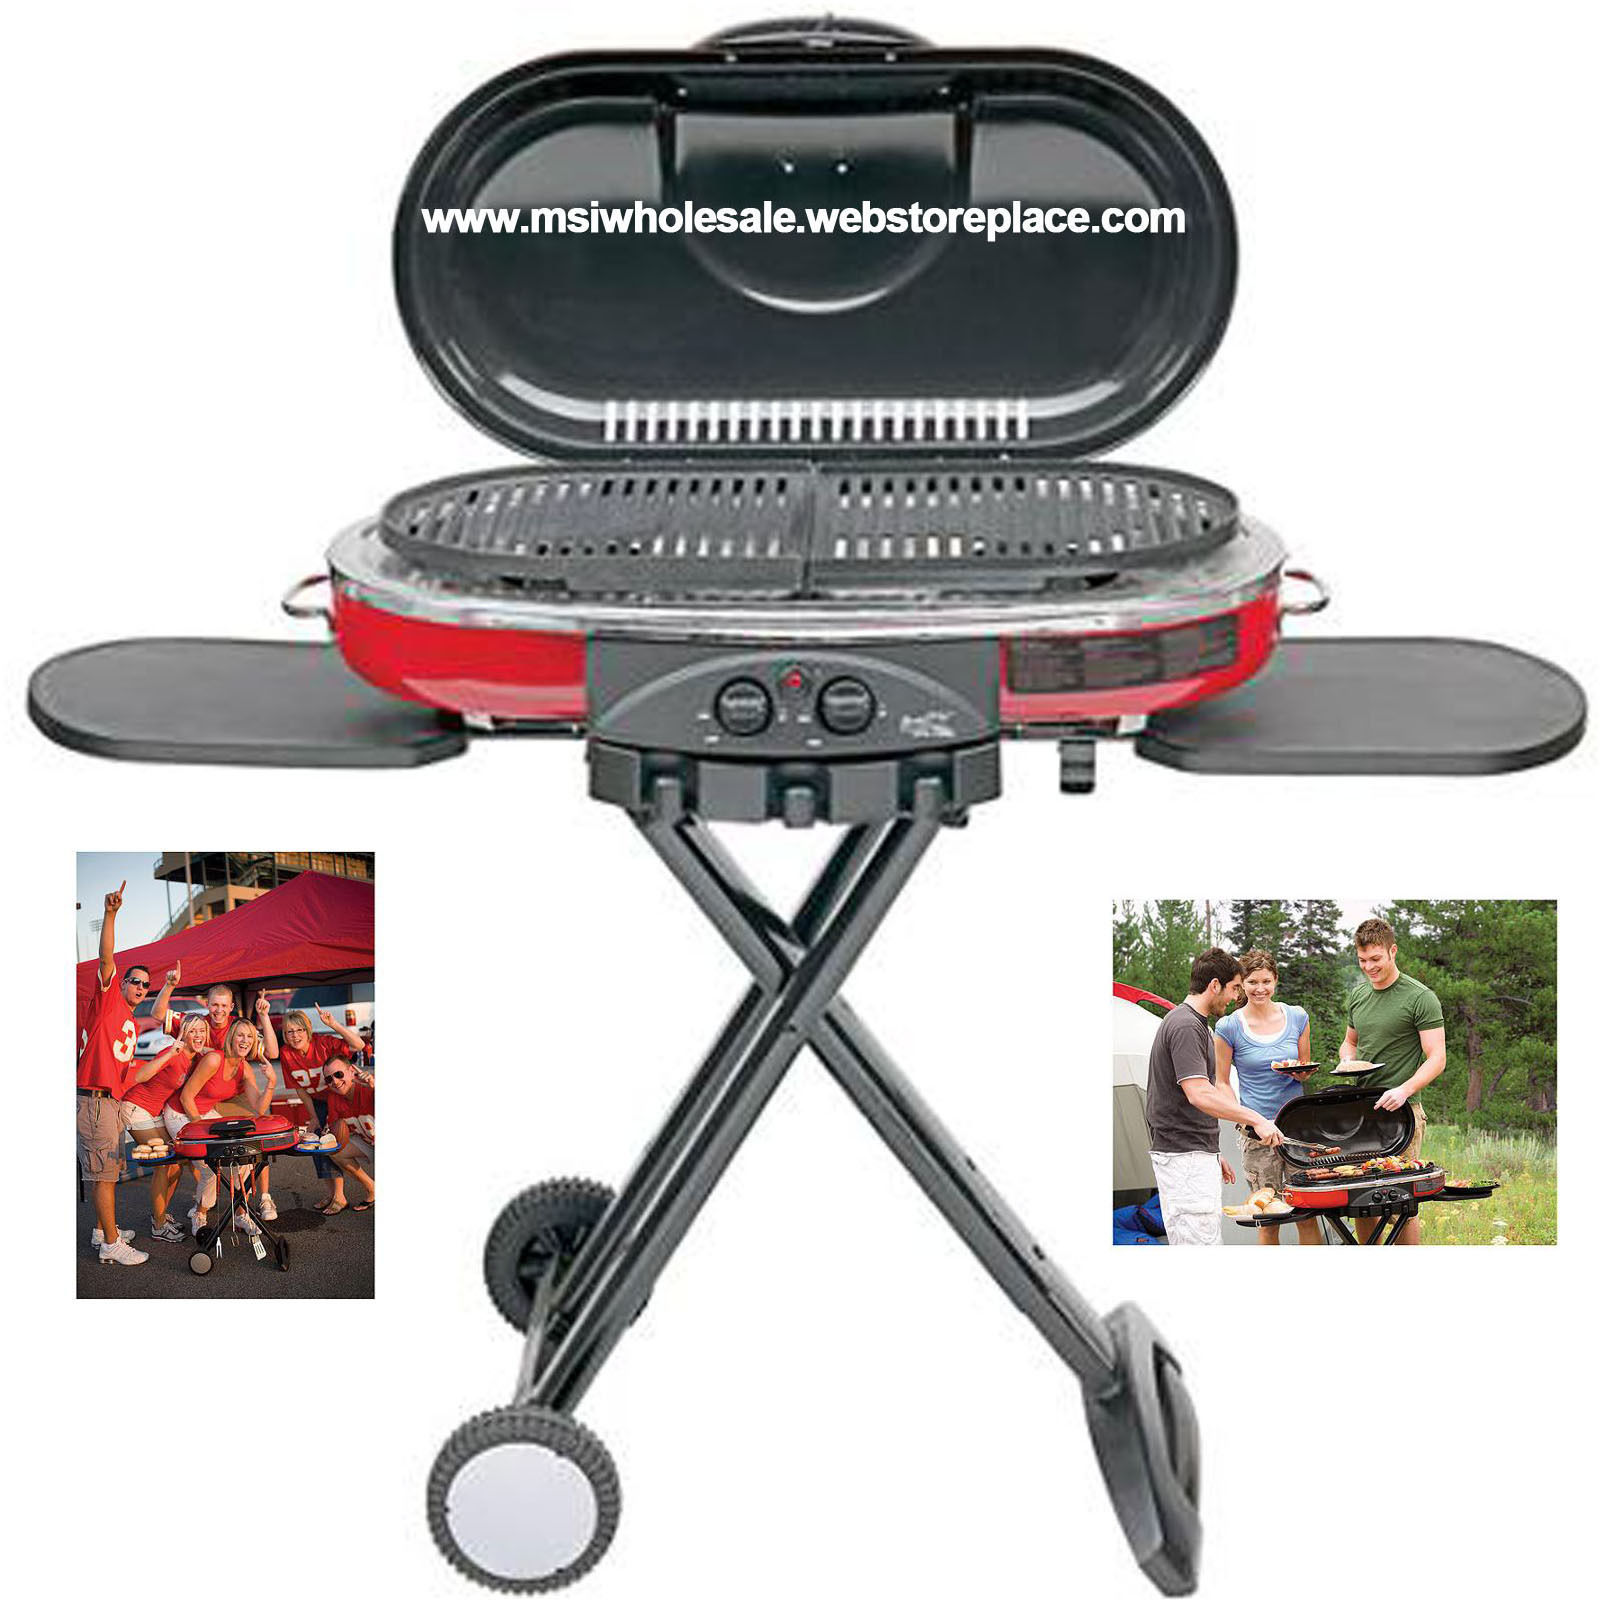 Portable Coleman Road Trip Grill LXE 2-Burner Propane Tailgating Camping 36 inch